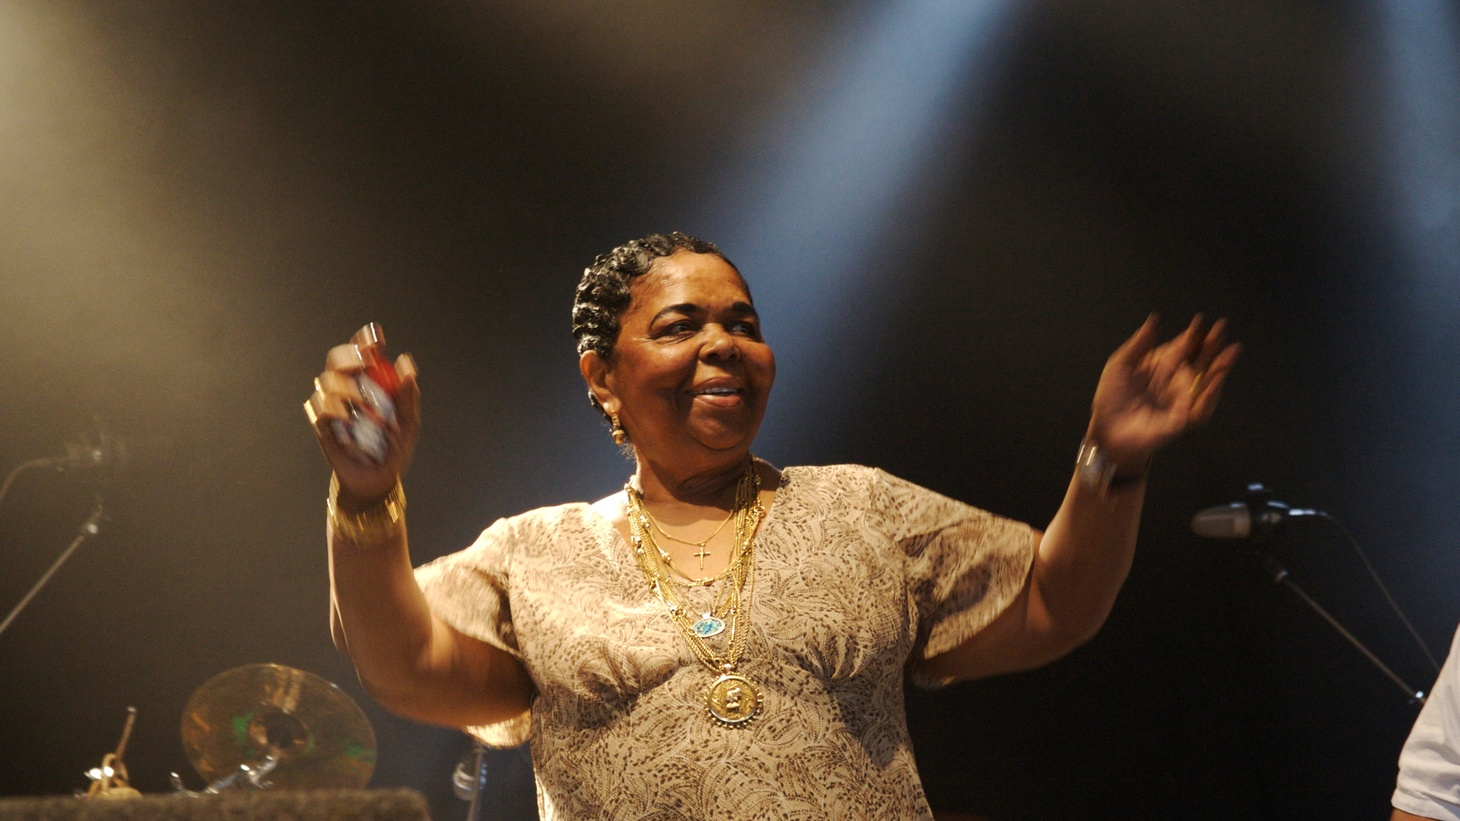 The most famous diva from Cape Verde, Cesaria Evora, visits our studios for a live performance.